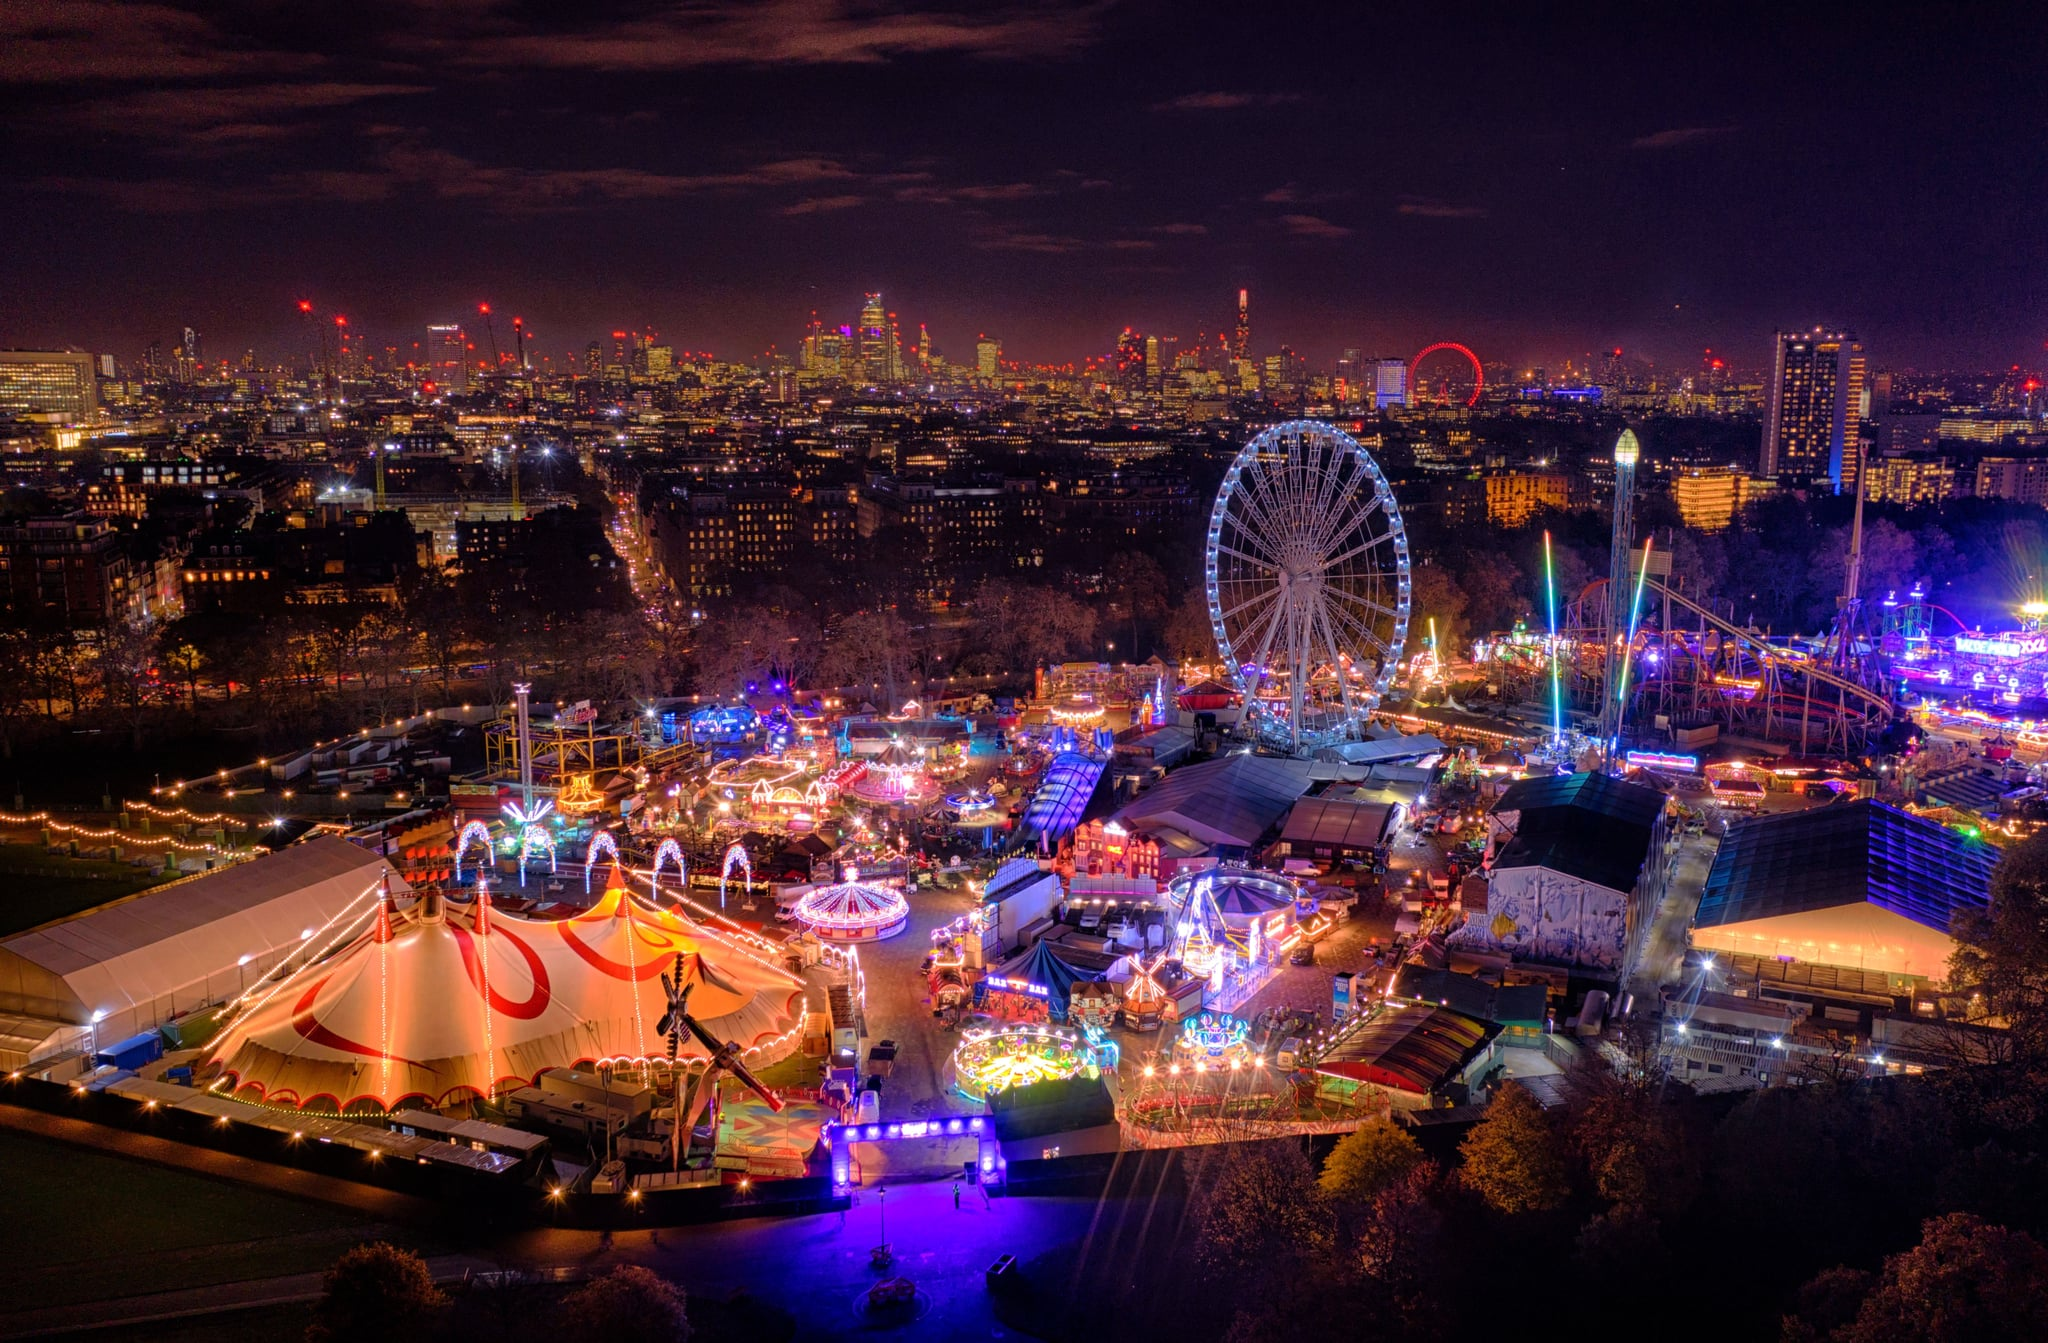 LONDON, UNITED KINGDOM - NOVEMBER 20: Winter Wonderland fair marks the start of the Christmas season in Central London at Hyde Park on November 20, 2019 in London United Kingdom. The Shard and The London Eye can be seen in the background. (Photo by Chris Gorman/Getty Images)